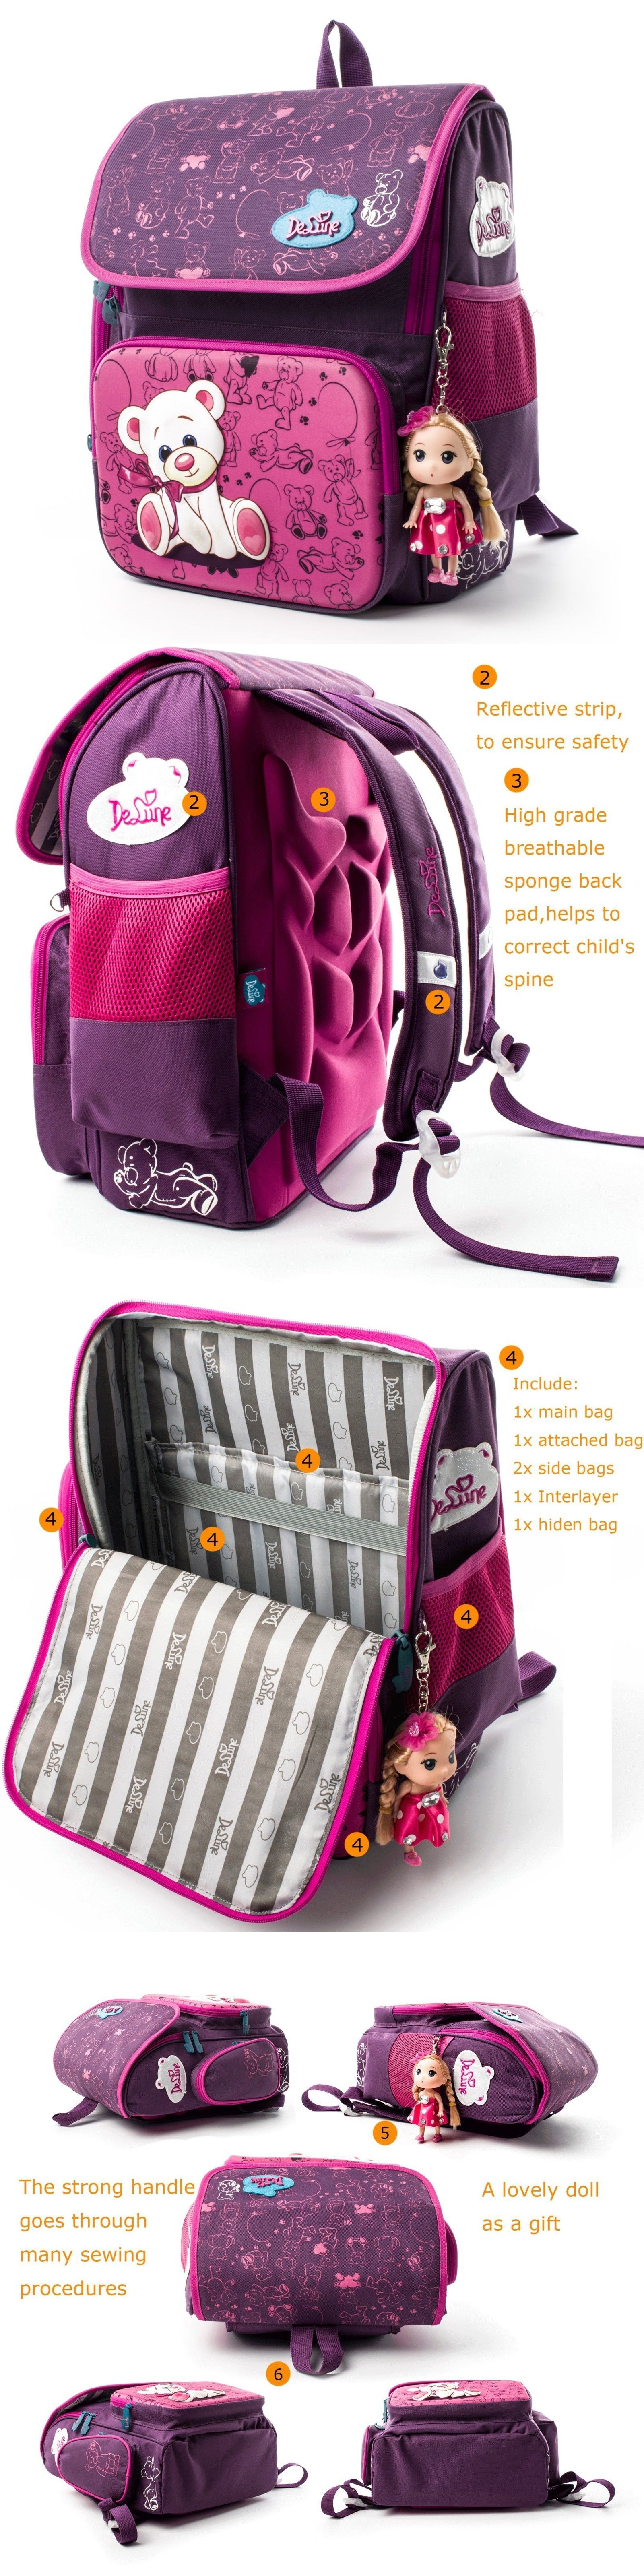 29fe448ce1 Backpacks and Bags 57882  School Backpack For Girls Kids School Bag With Lovely  Doll Waterproof Backpack -  BUY IT NOW ONLY   48.31 on eBay!